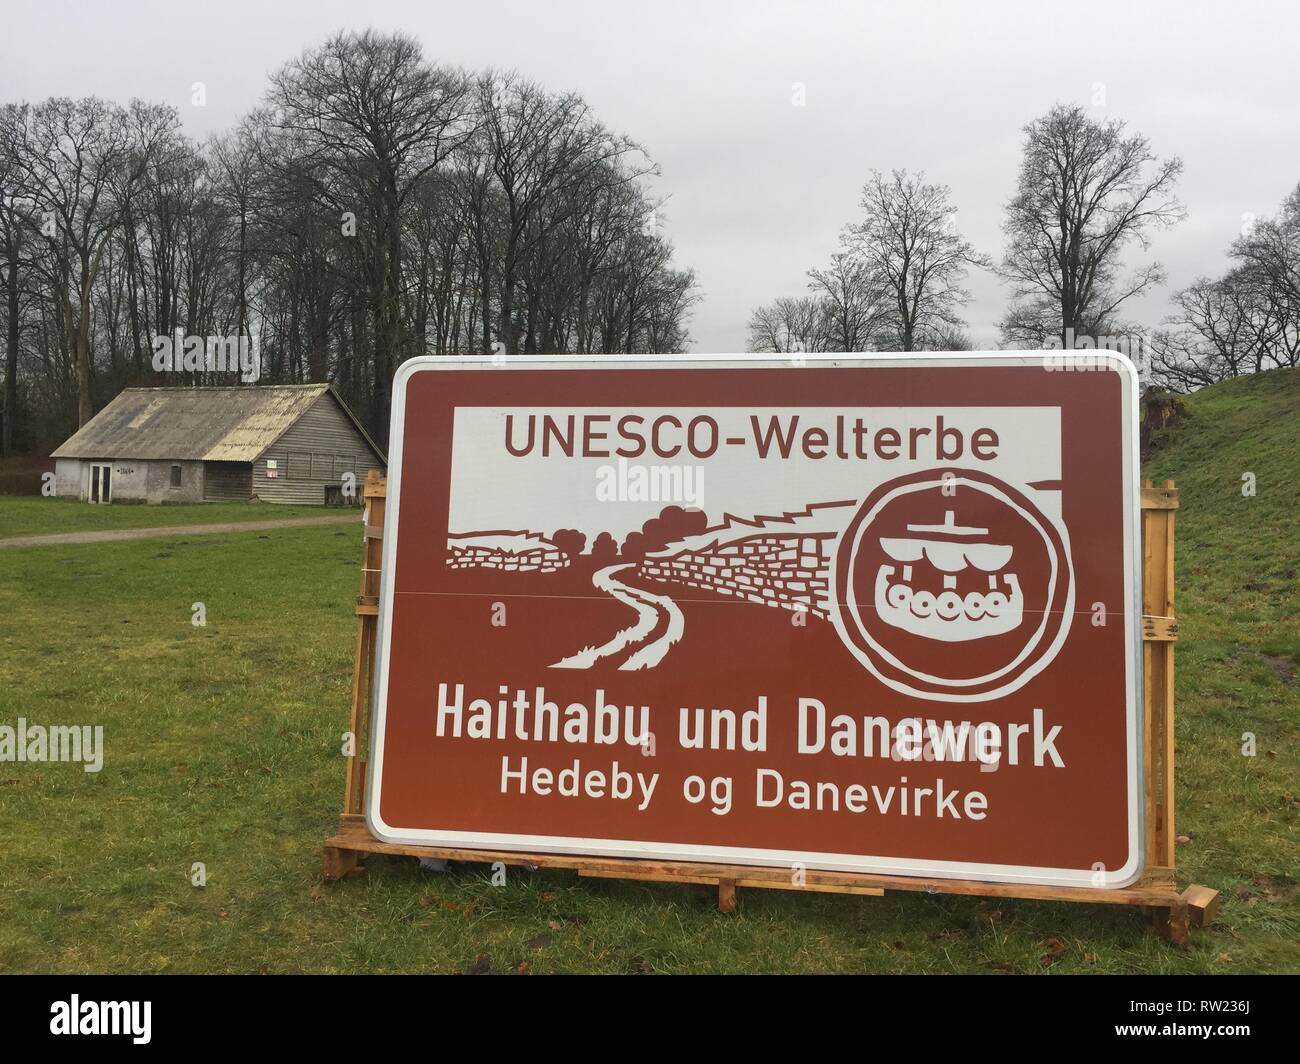 Dannewerk, Germany. 04th Mar, 2019. A new motorway sign stands at a press event in front of the Danewerk fortification from the Viking Age. Since Monday, the Haithabu-Danewerk has been advertising a side trip to the Unesco World Heritage Site with new information boards on the A7. (to dpa 'New highway signs will be for World Heritage Haithabu-Danewerk') Credit: Birgitta von Gyldenfeldt/dpa/Alamy Live News - Stock Image